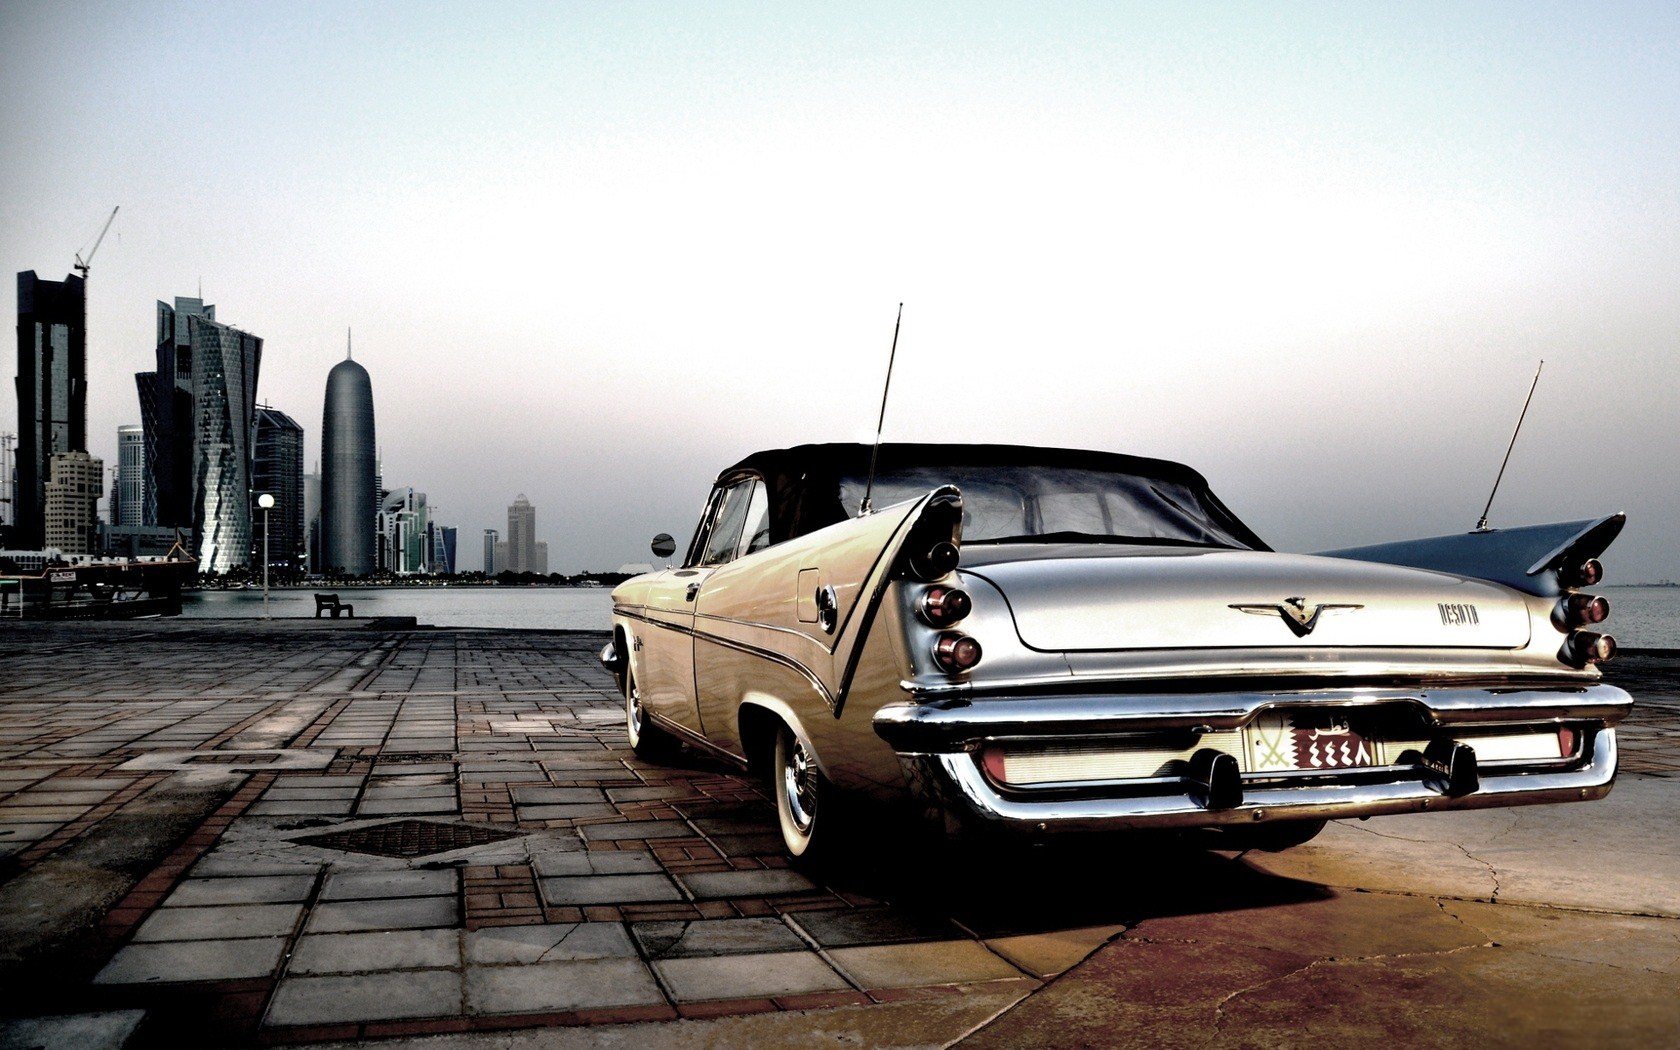 Hd Wallpapers Of Old Cars 1680x1050